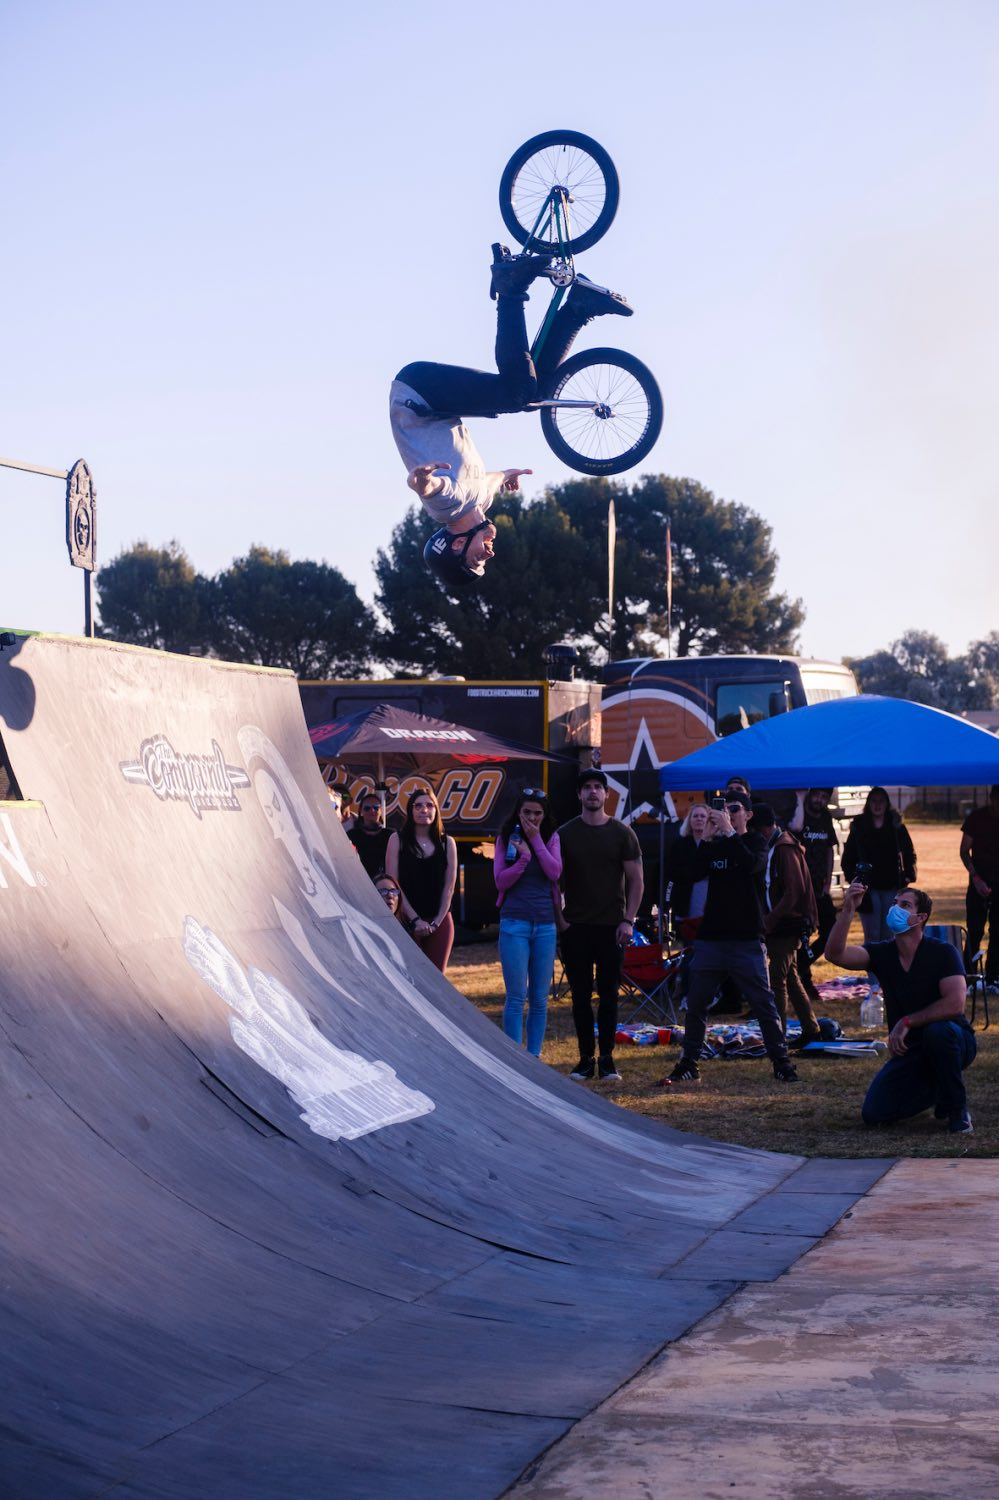 Matty Duffy Backflip Tuck No hander to Fakie attempt at Park Lines